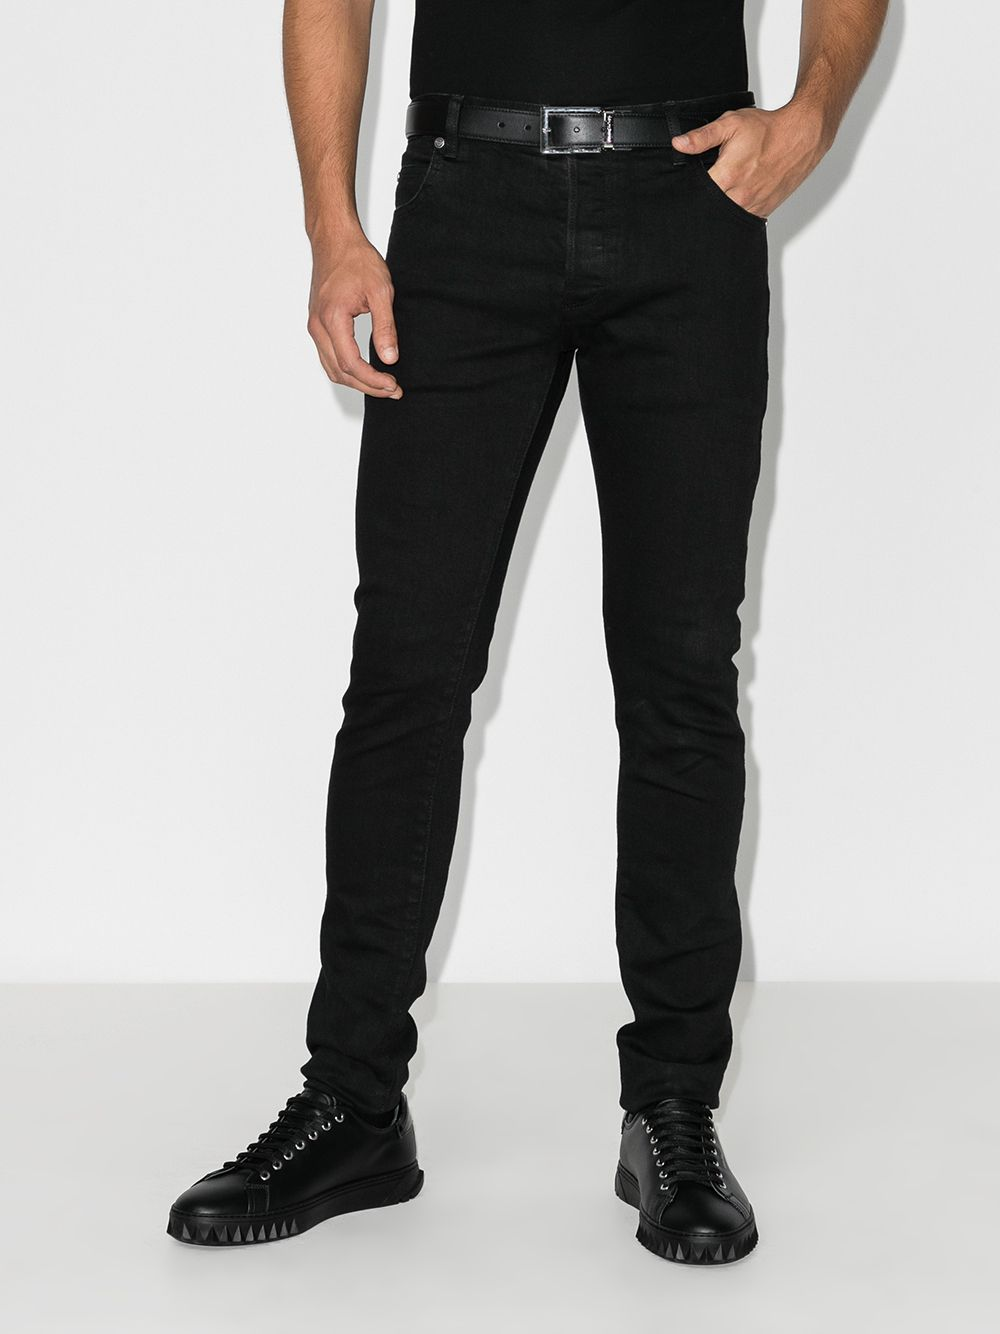 BALMAIN Slim Jeans Black - Maison De Fashion